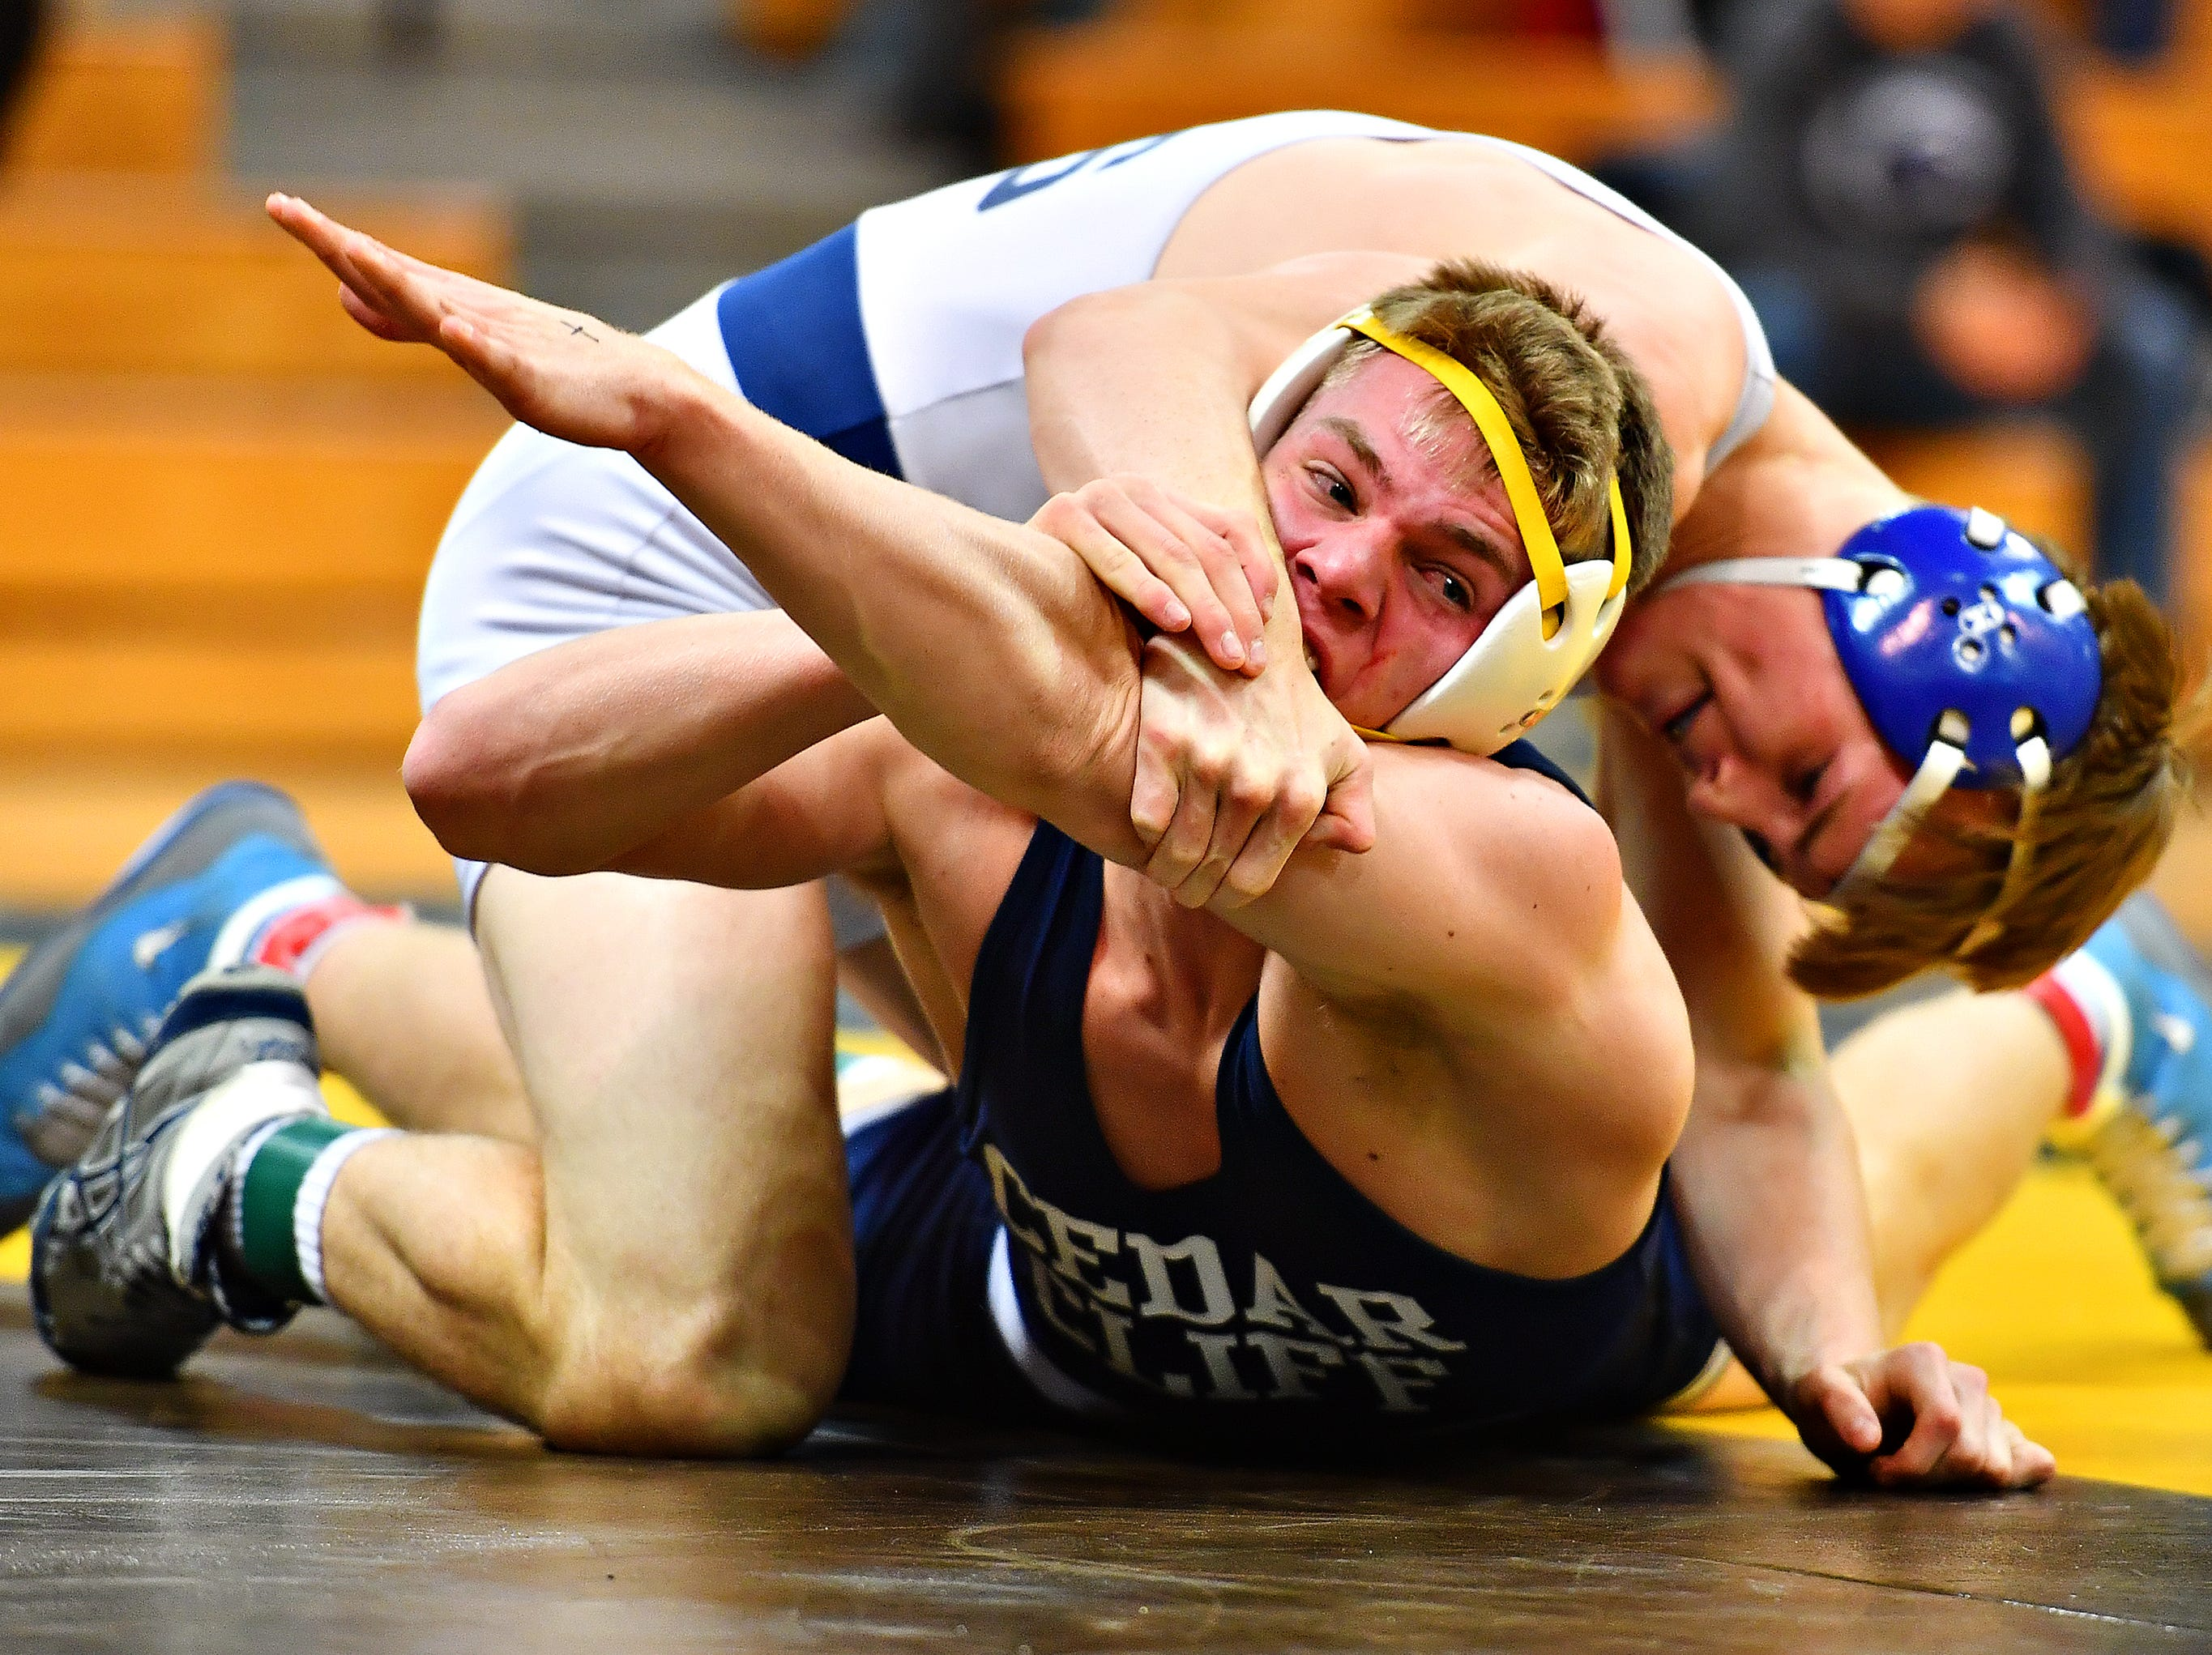 Dallastown's John Ligon, top, wrestles Cedar Cliff's Bobby Whalen in the 160 pound weight class during District 3, Class 3A wrestling championship action at Milton Hershey High School in Hershey, Saturday, Feb. 2, 2019. Dawn J. Sagert photo